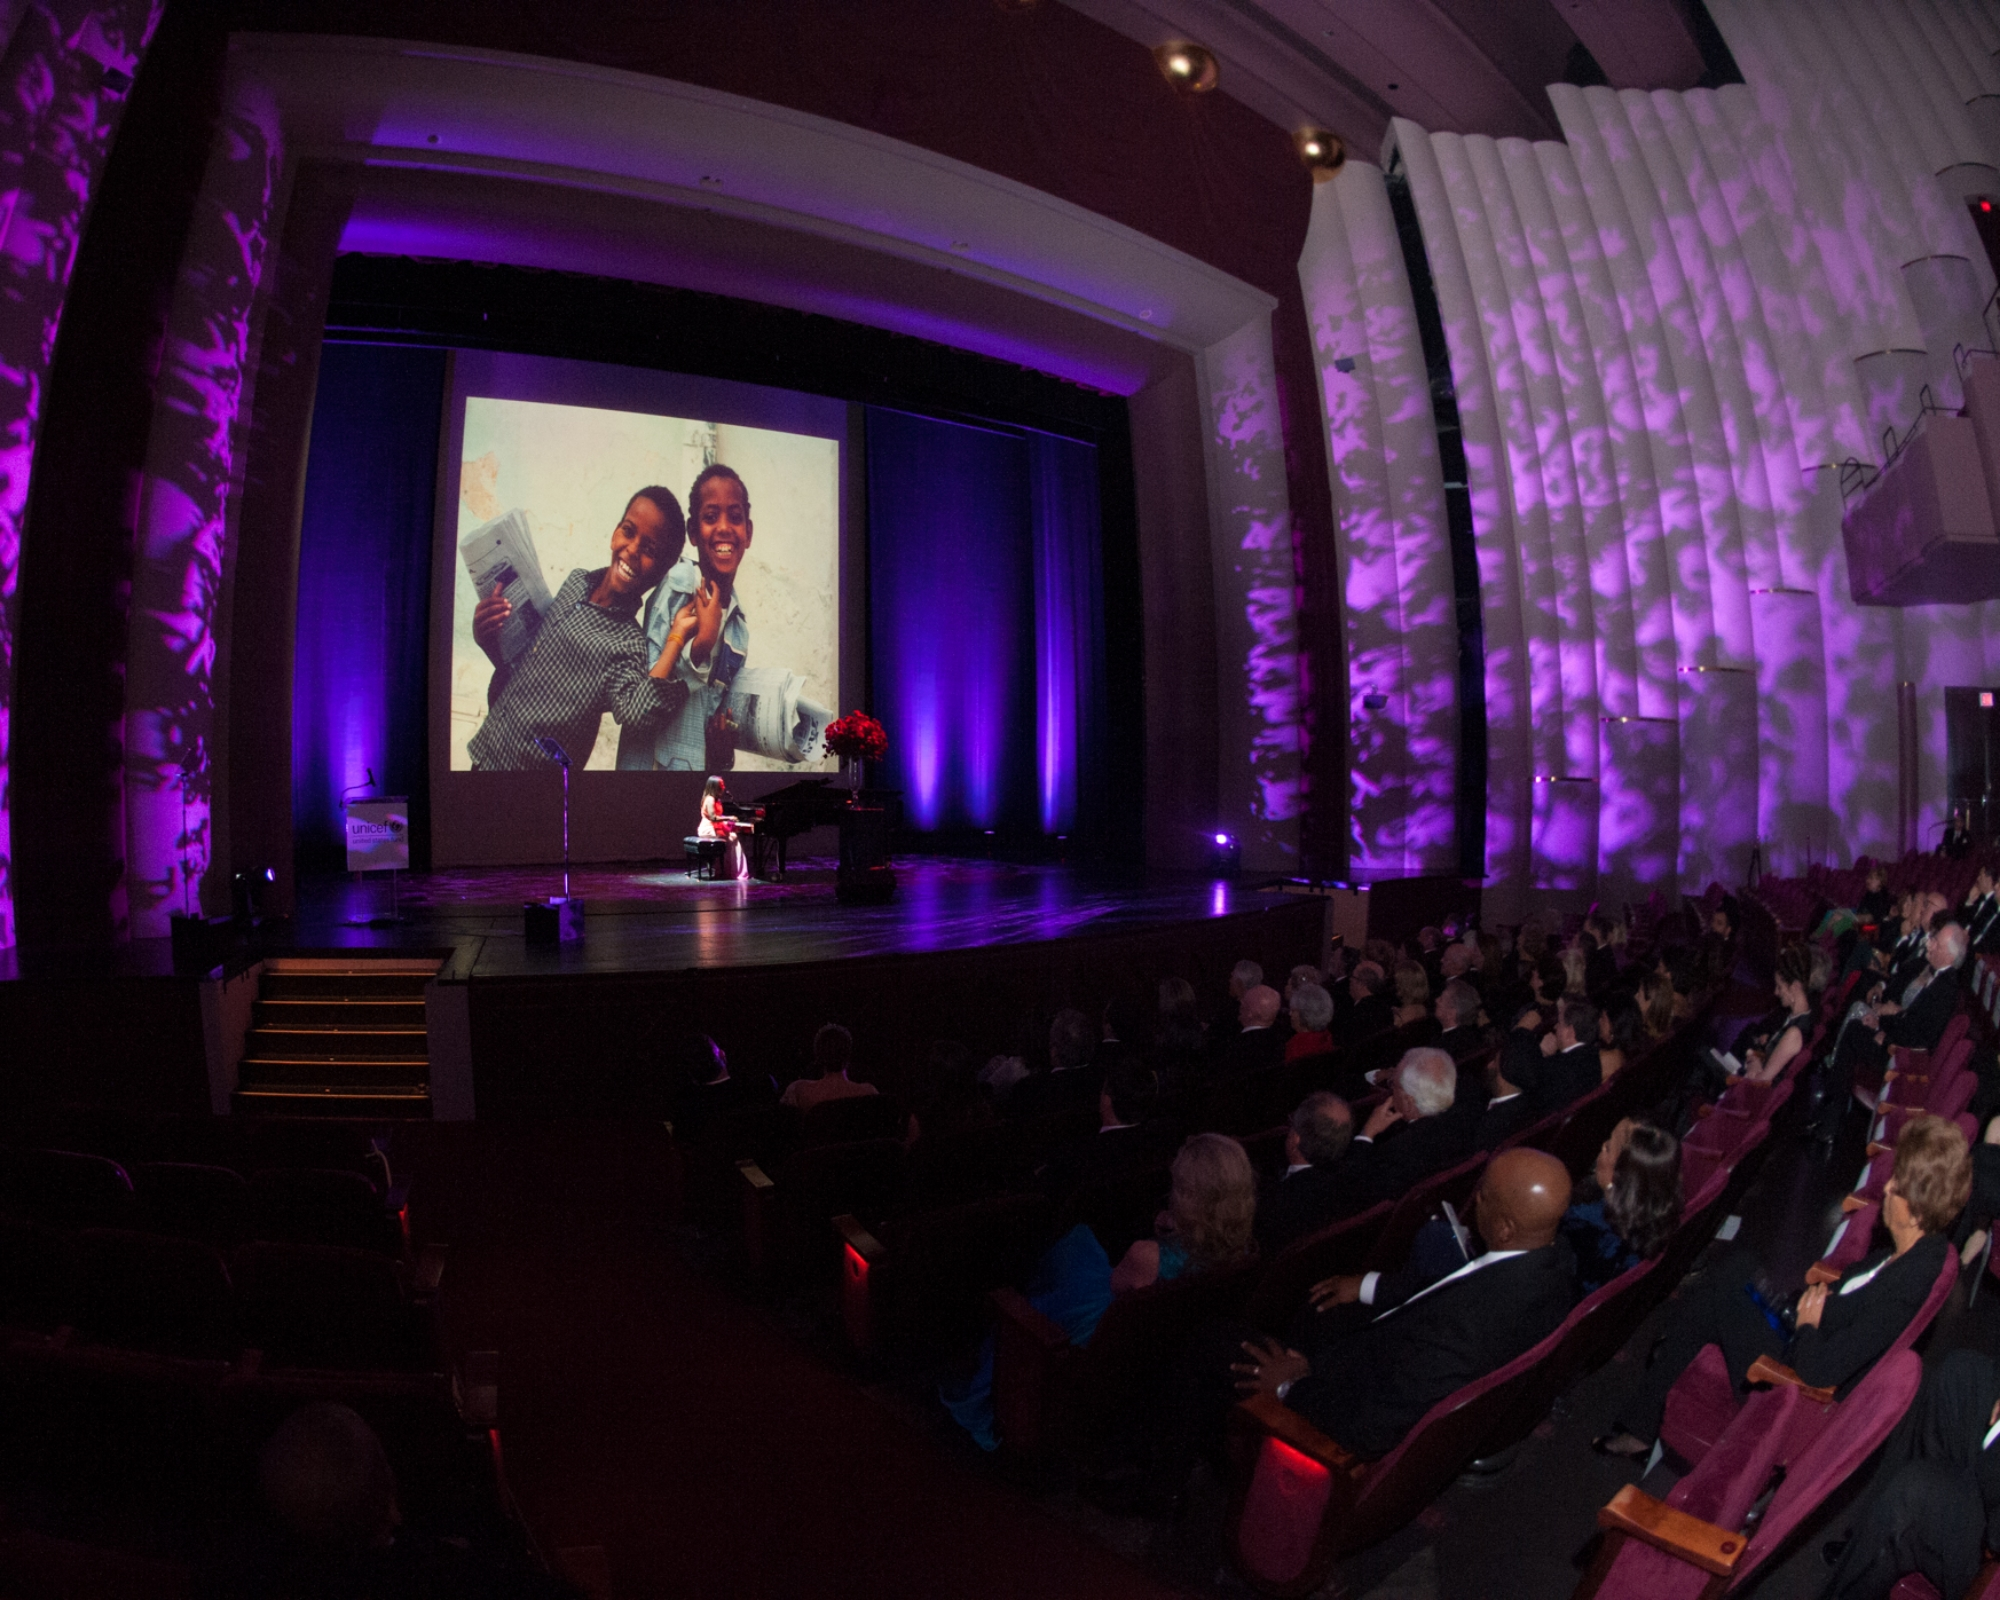 Grammy-nominated musician Oleta Adams performs at The 2nd Annual UNICEF Audrey Hepburn® Society Ball at the Wortham Center on October 14, 2014 in Houston, Texas.  (Photo by Alexander's Fine Portrait Design © Alexander Rogers)